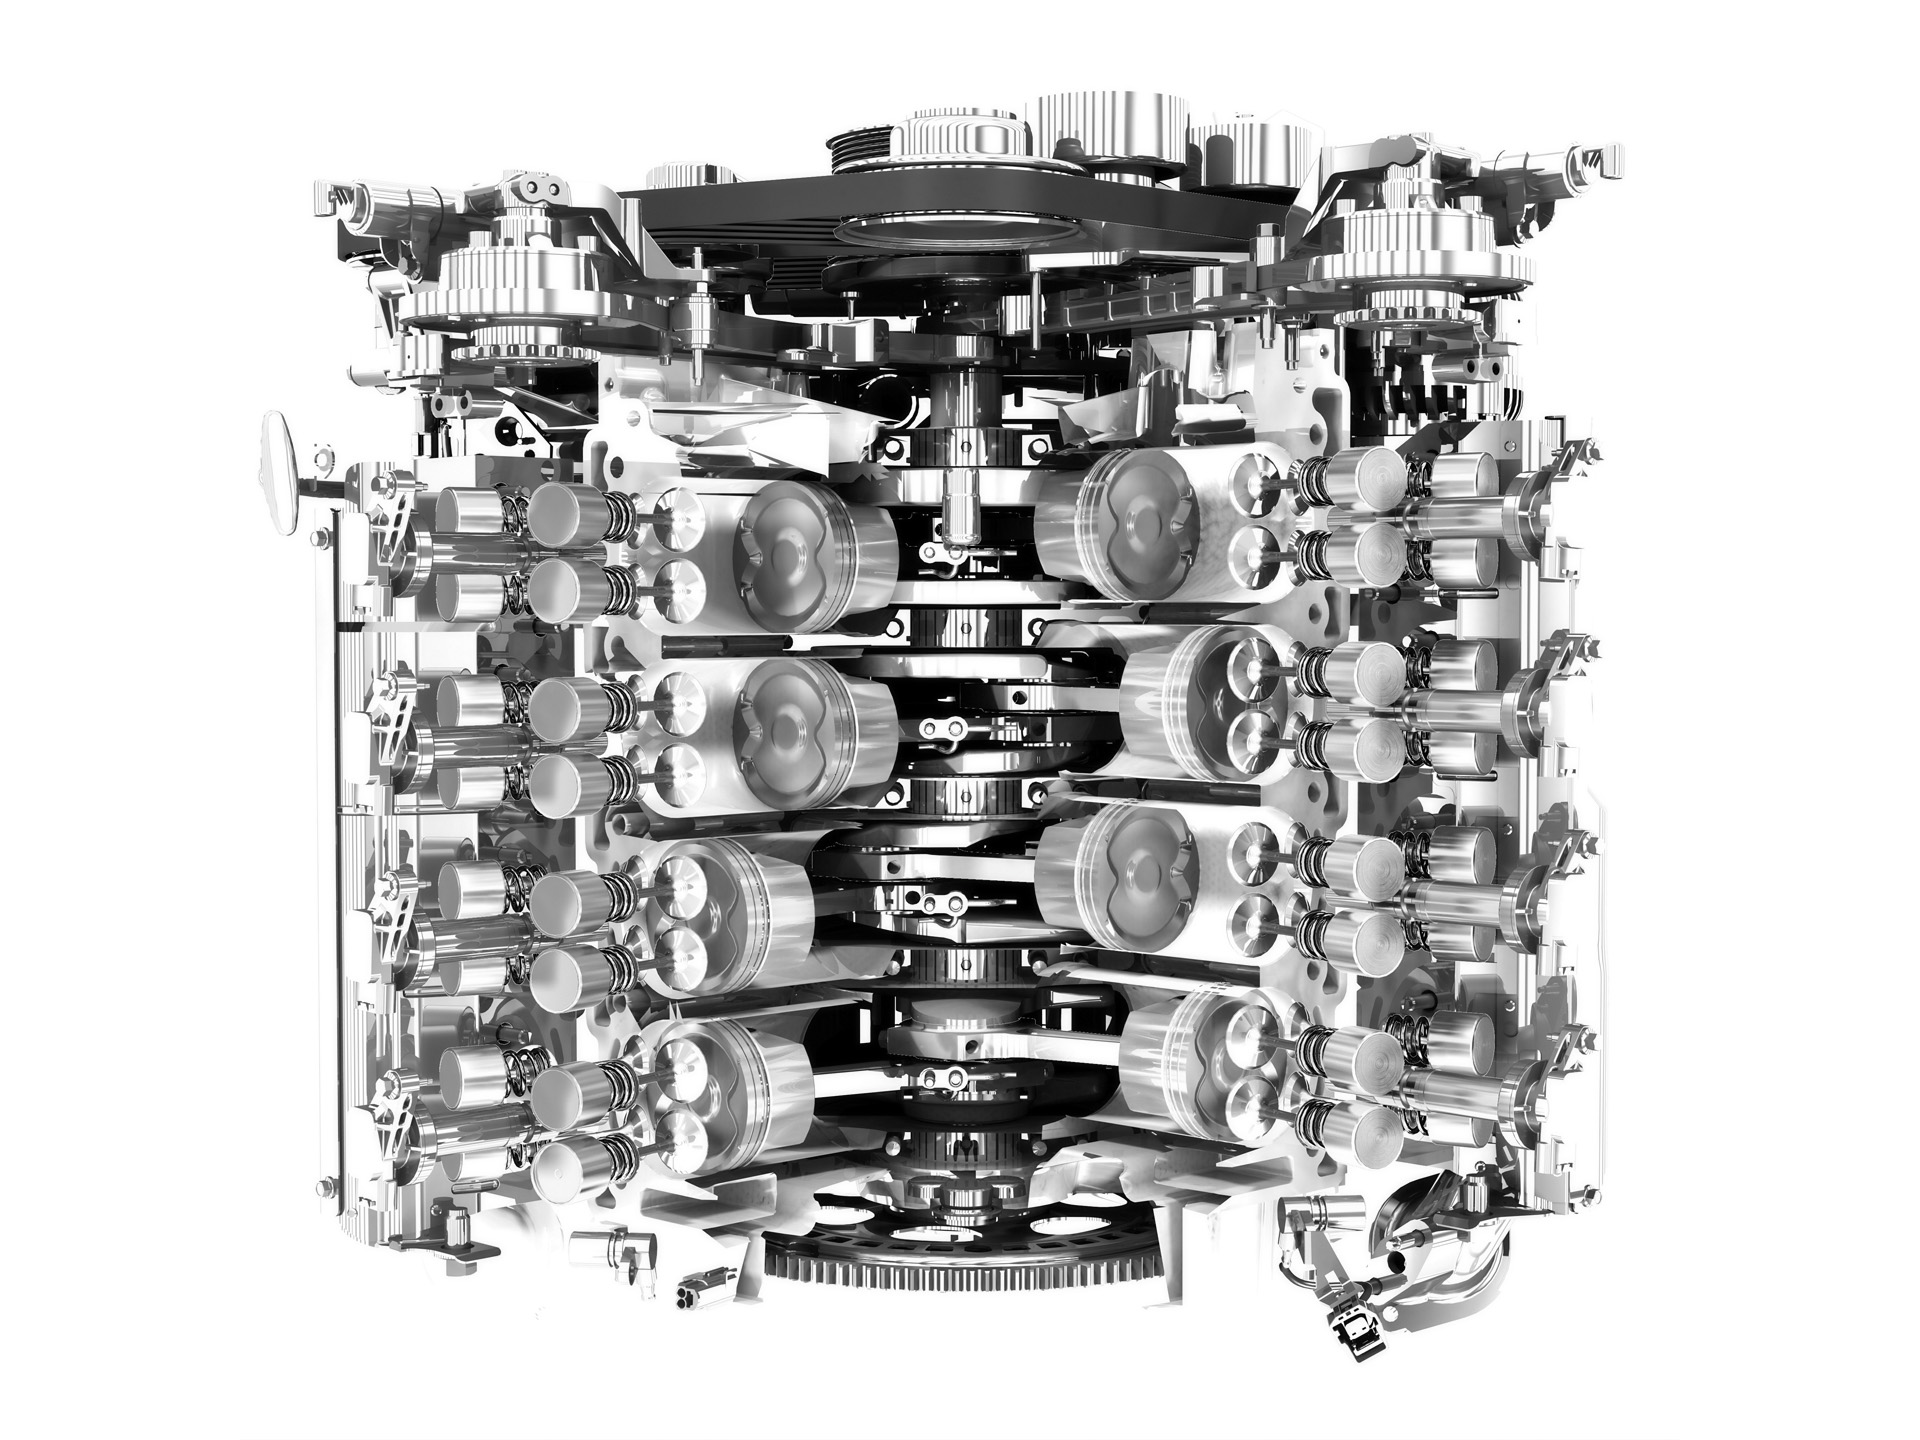 Sample P0559 Engine